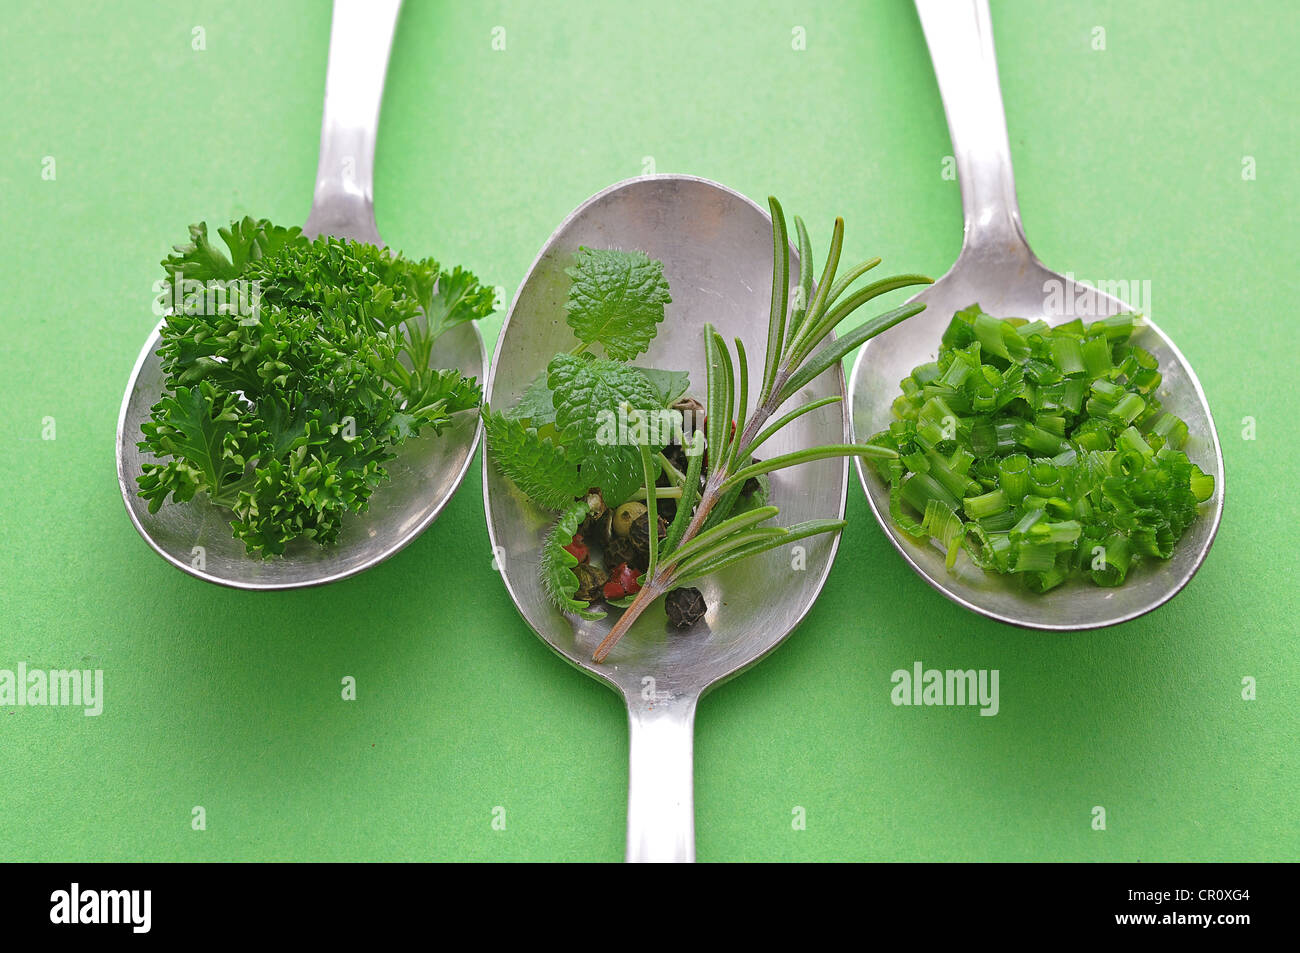 Culinary herbs and spices on old spoons, chives, rosemary, parsley, pepper, mint - Stock Image